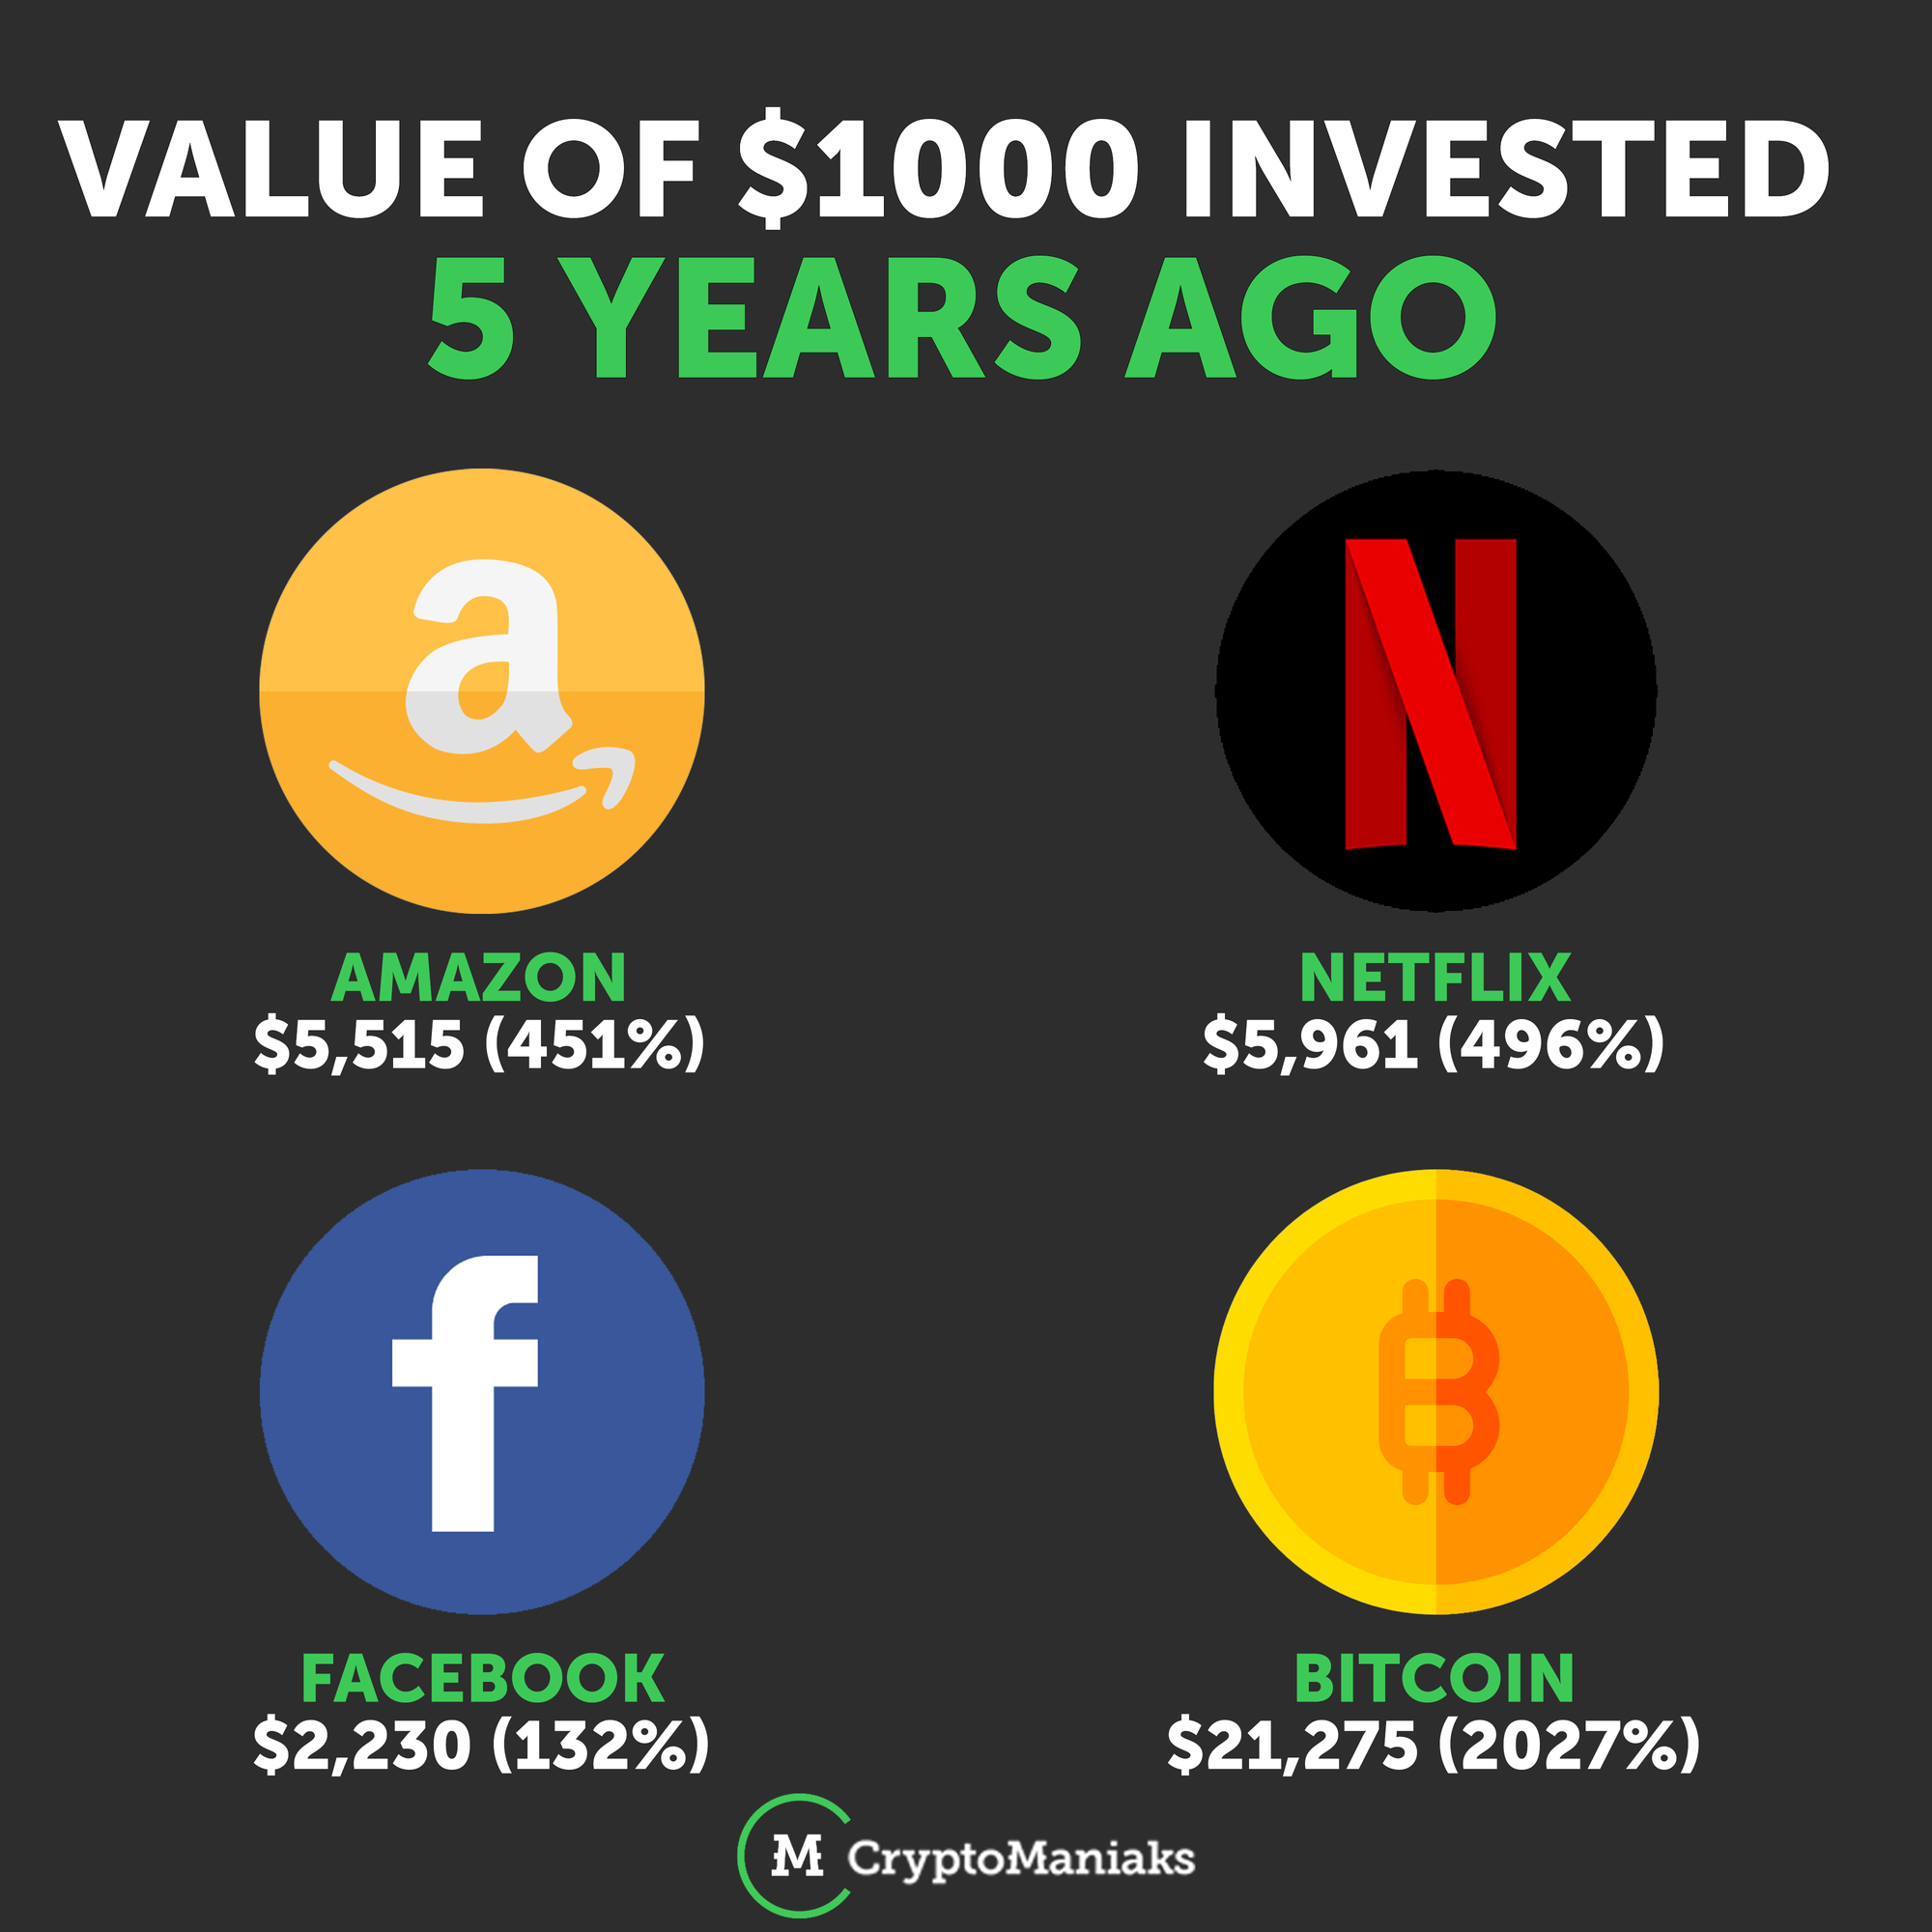 if you invested in bitcoin 5 years ago